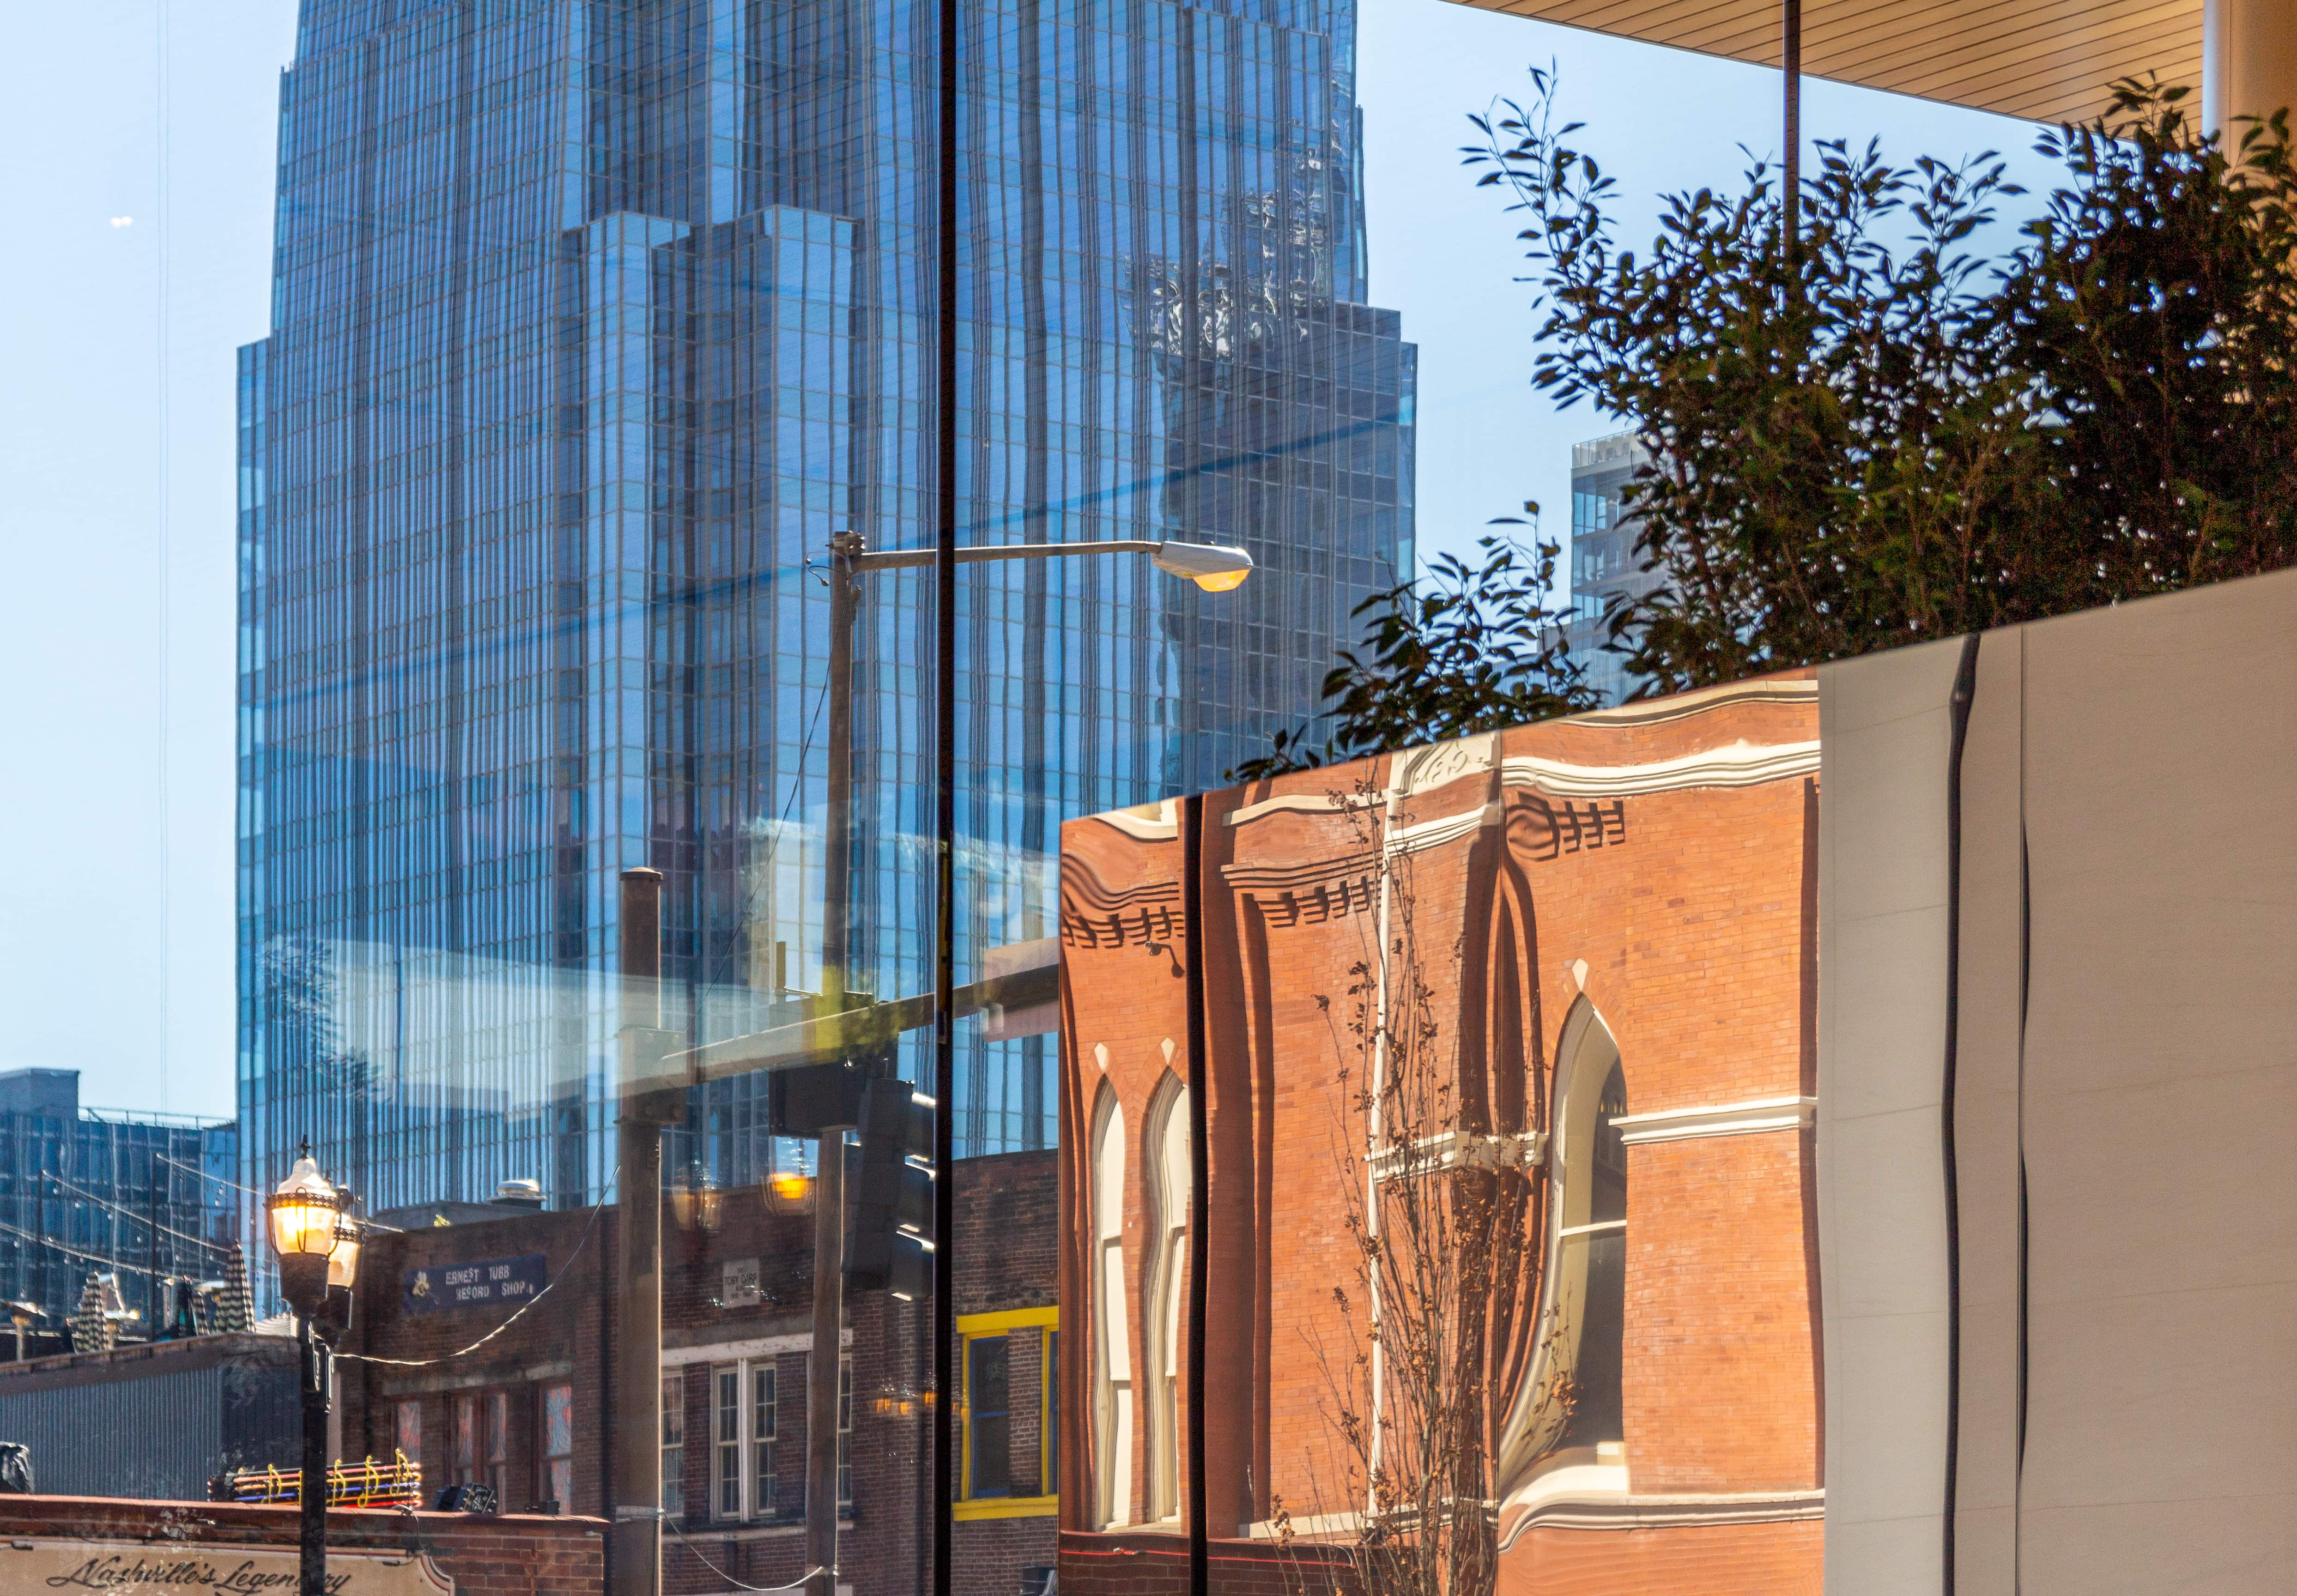 The Ryman Auditorium reflects in the mirror-polished Video Wall